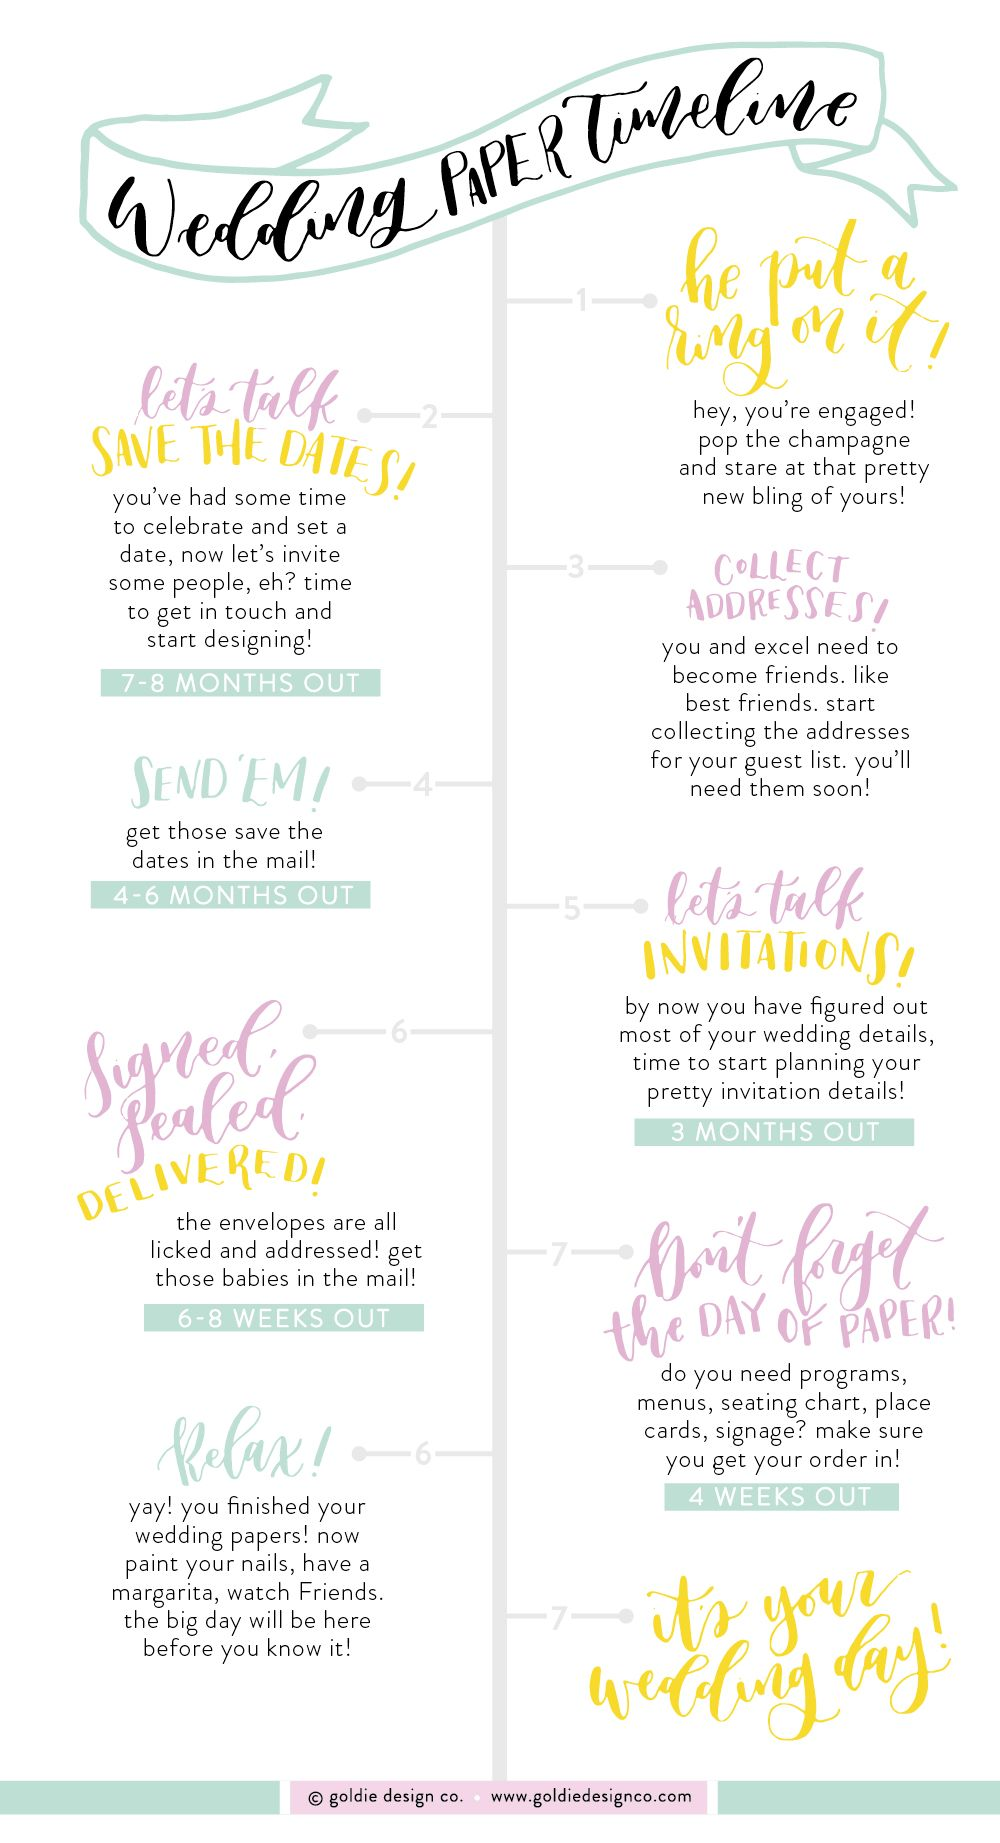 WEDDING PAPER TIMELINE - Ever wondered when you are supposed to ...